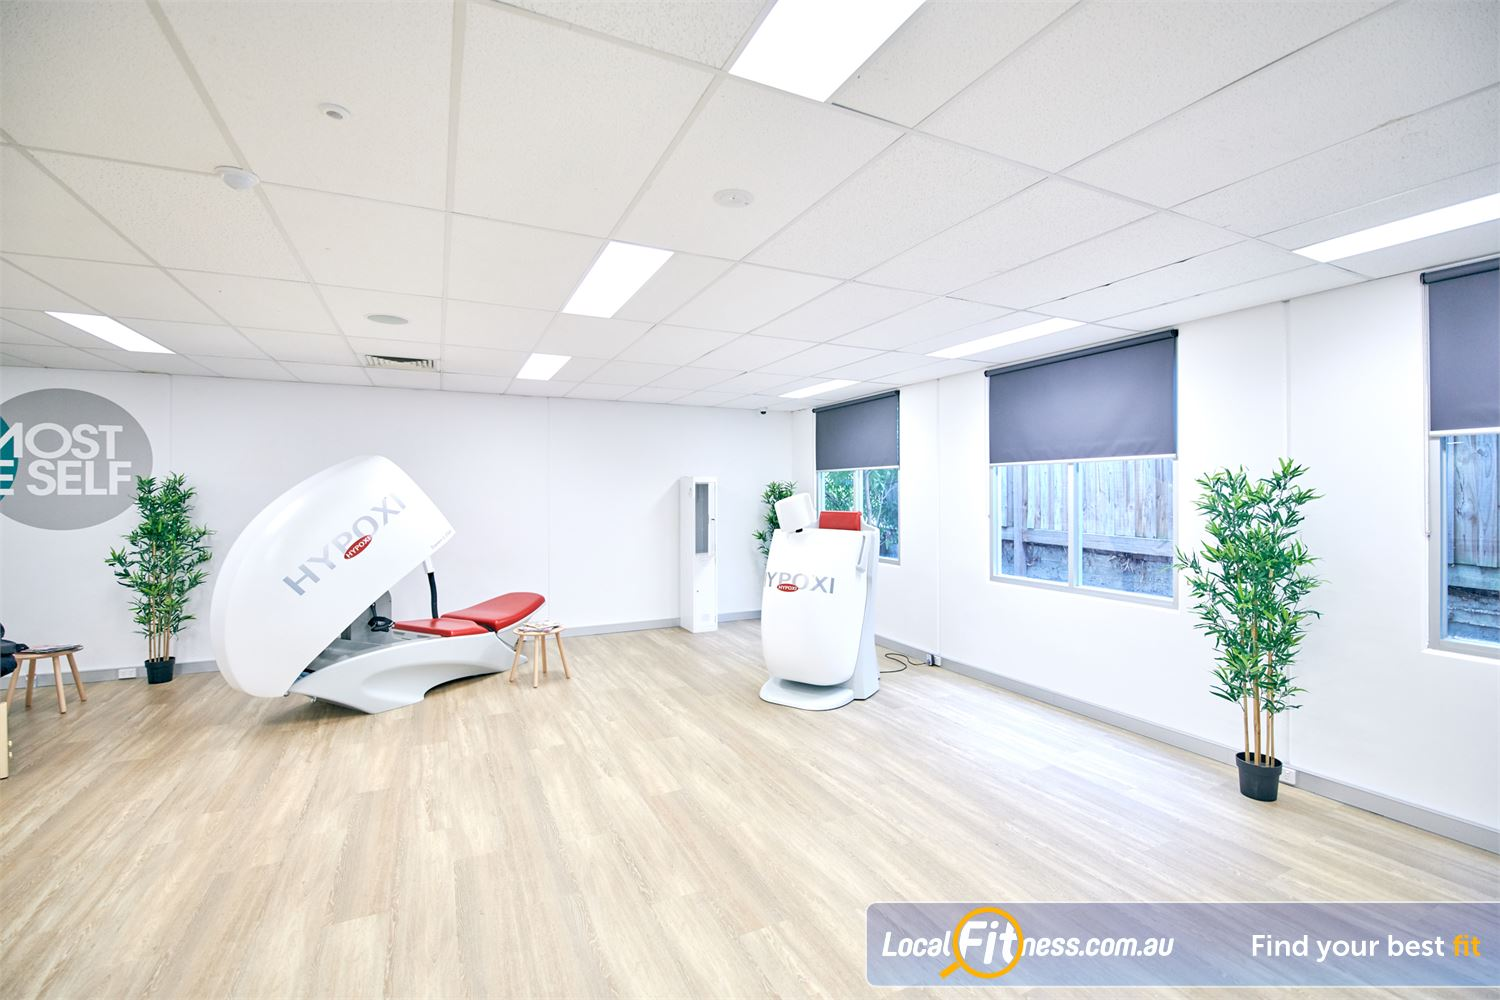 HYPOXI Weight Loss Jindalee Our advanced HYPOXI machines will monitor your heart rate, skin temperature during treatment.